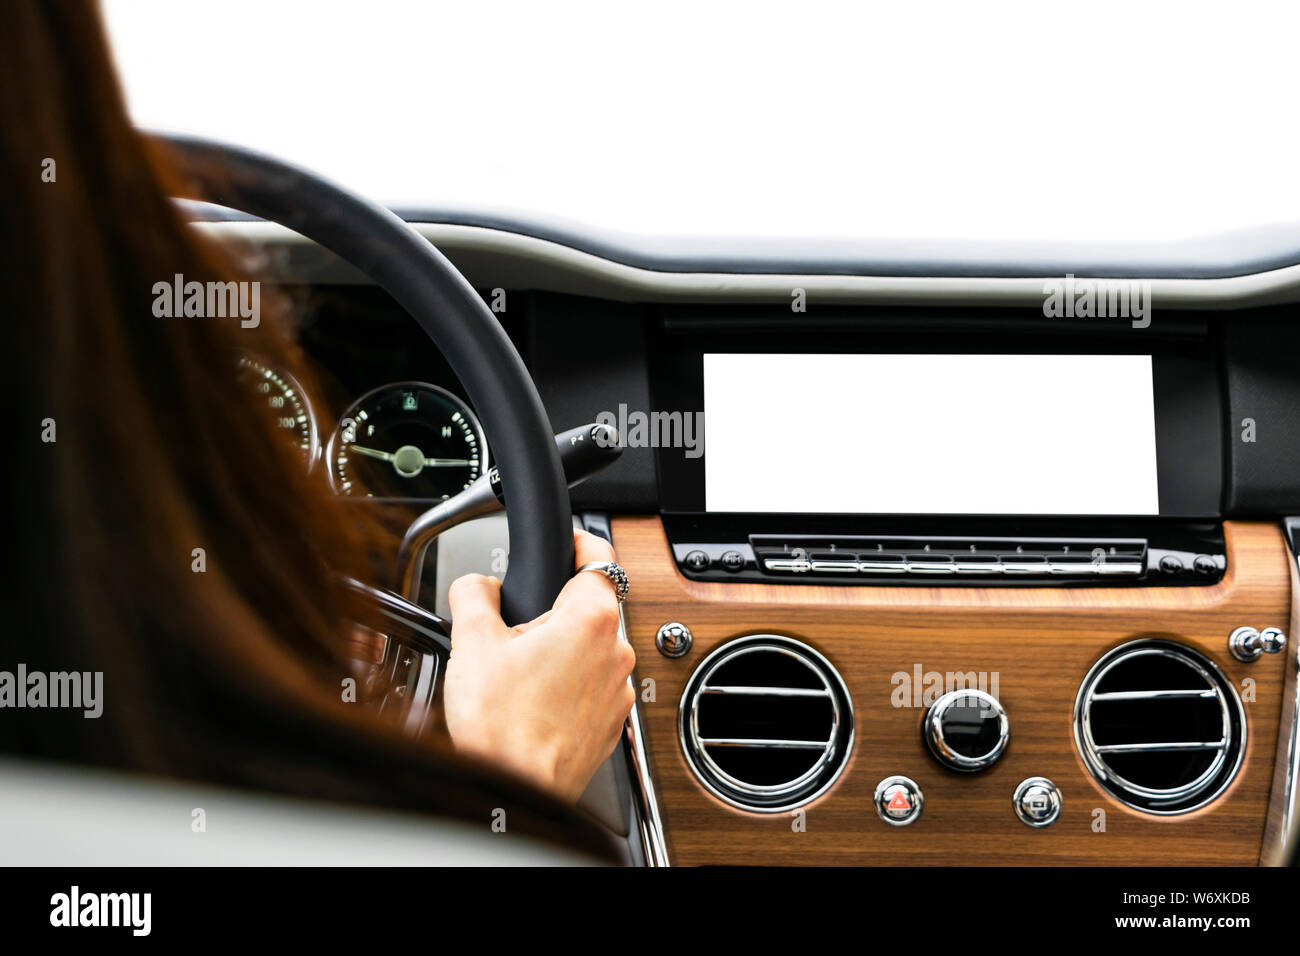 Woman hands holding car steering wheel of a modern car. Hands on steering wheel of a car driving. Girl driving a car inside cabin. Monitor in car with Stock Photo